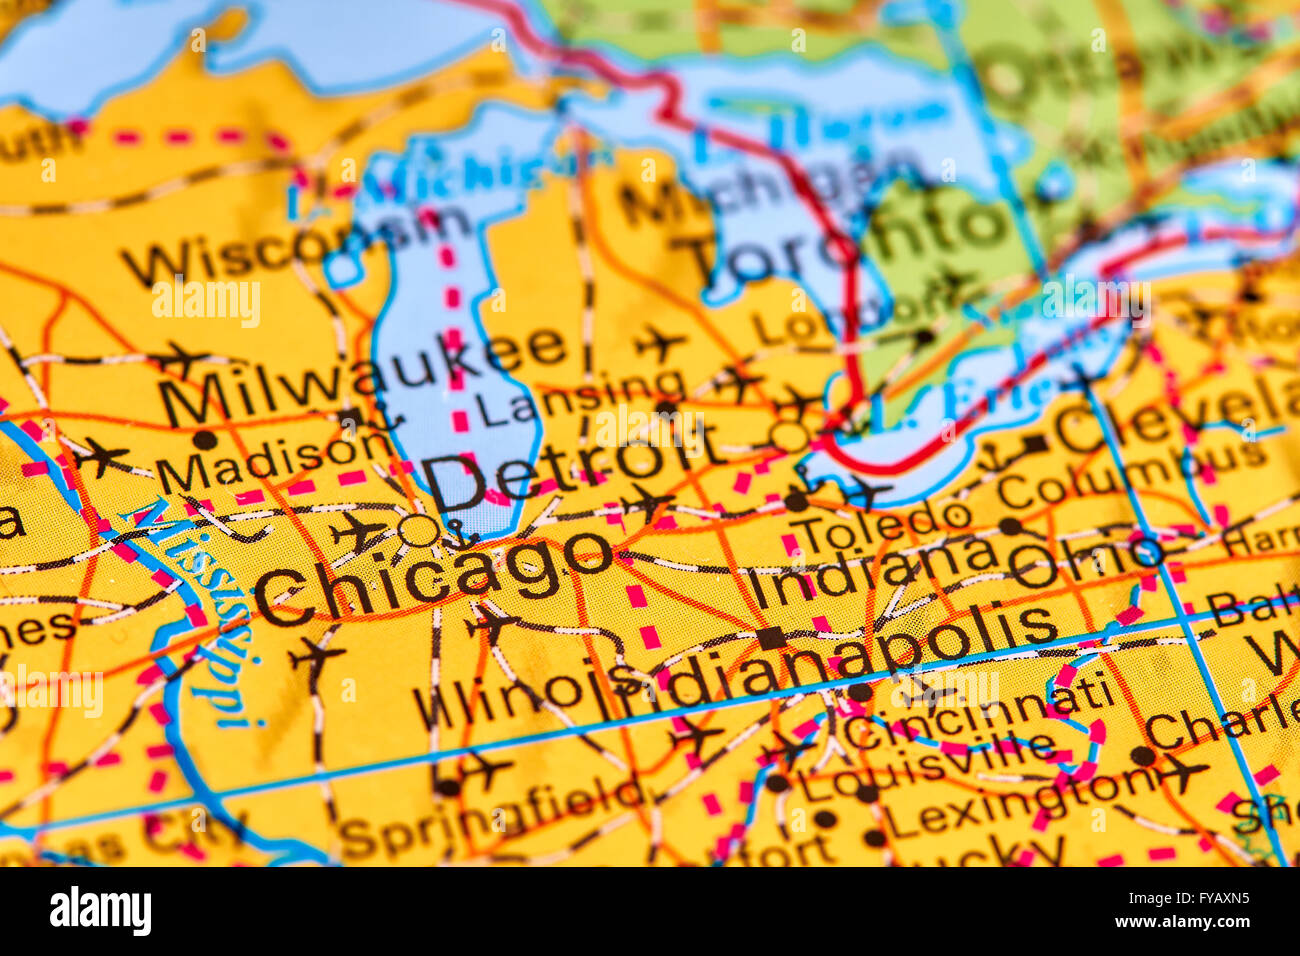 Chicago, City in USA on the World Map Stock Photo: 102888049 ... on italy on world map, bangkok on world map, dead sea on world map, amazon river on world map, washington dc on world map, vienna on world map, 1893 chicago world's fair map, cape town world map, chicago on north america map, new york city on world map, moscow on world map, istanbul on world map, england on world map, chicago on the water, london on world map, madrid world map, chicago on state map, chicago on usa map, chicago on map of world, hawaii on world map,